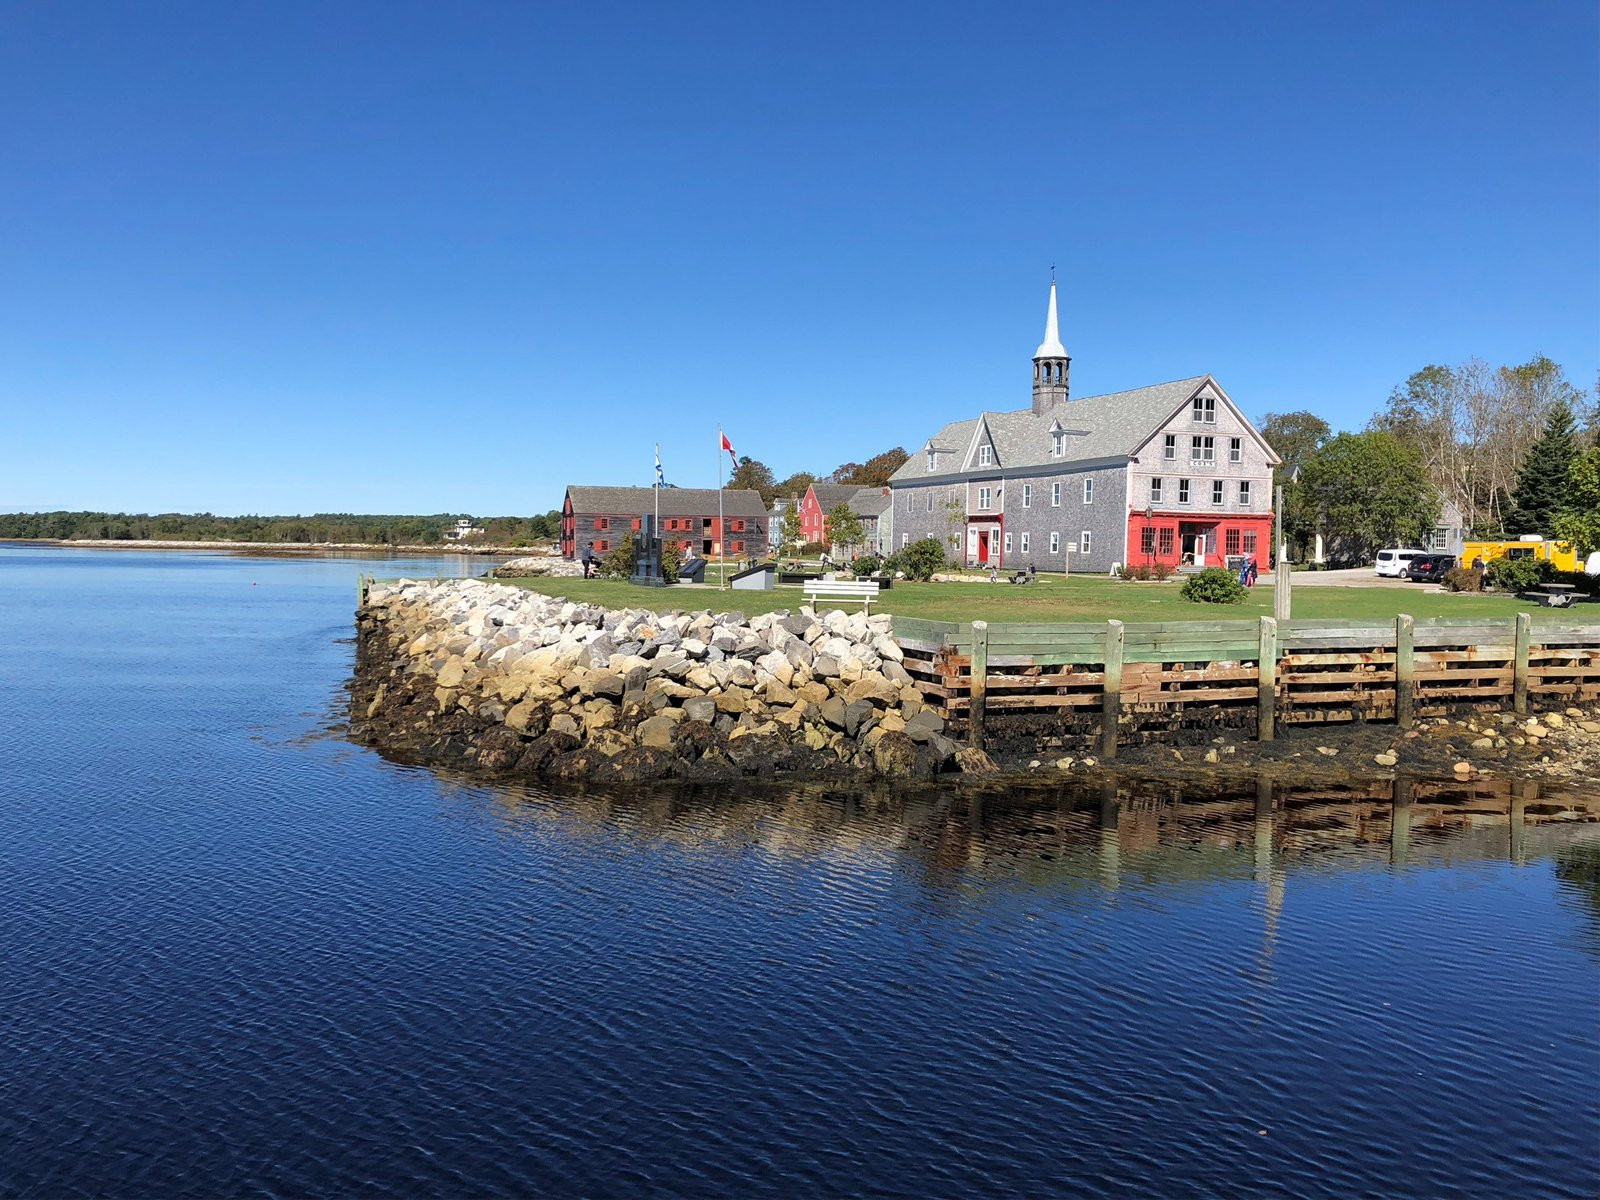 the small coastal town of Shelburne in Nova Scotia